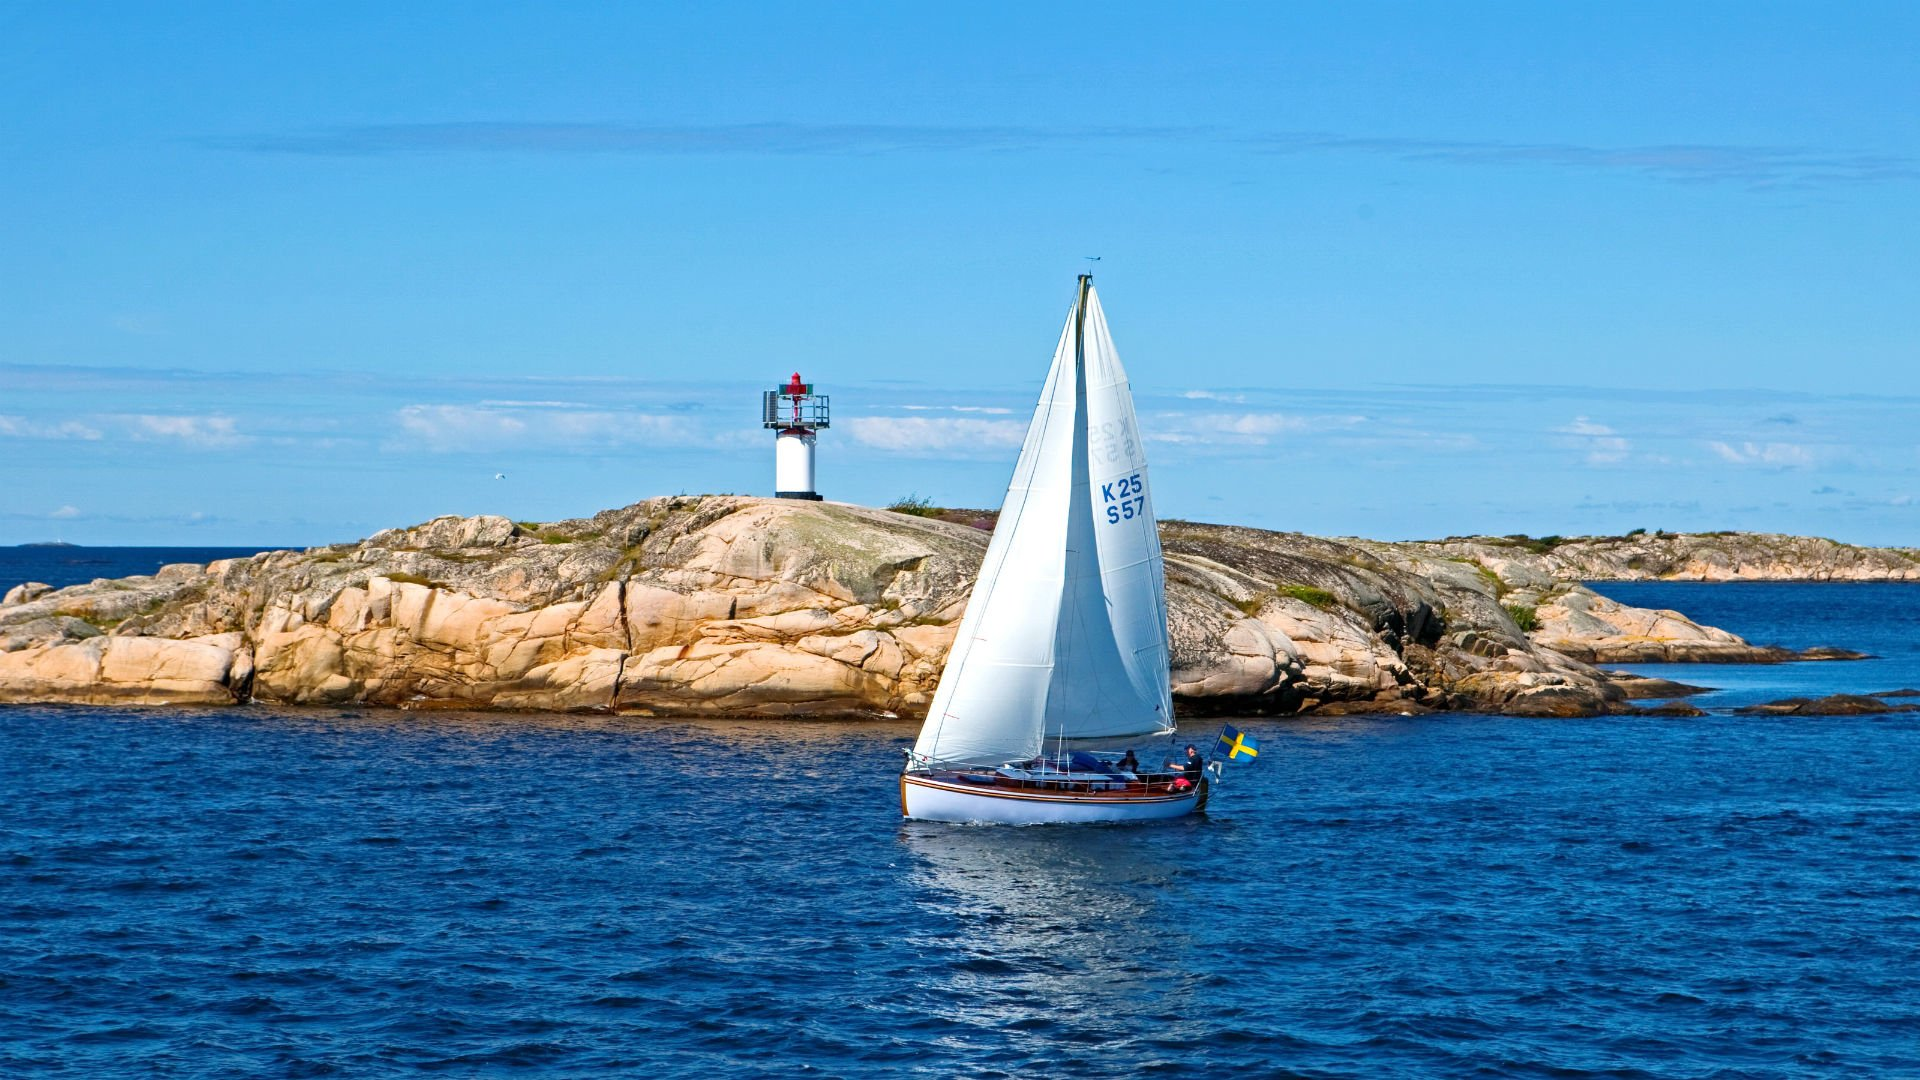 hungry for sailboat wallpaper - photo #8